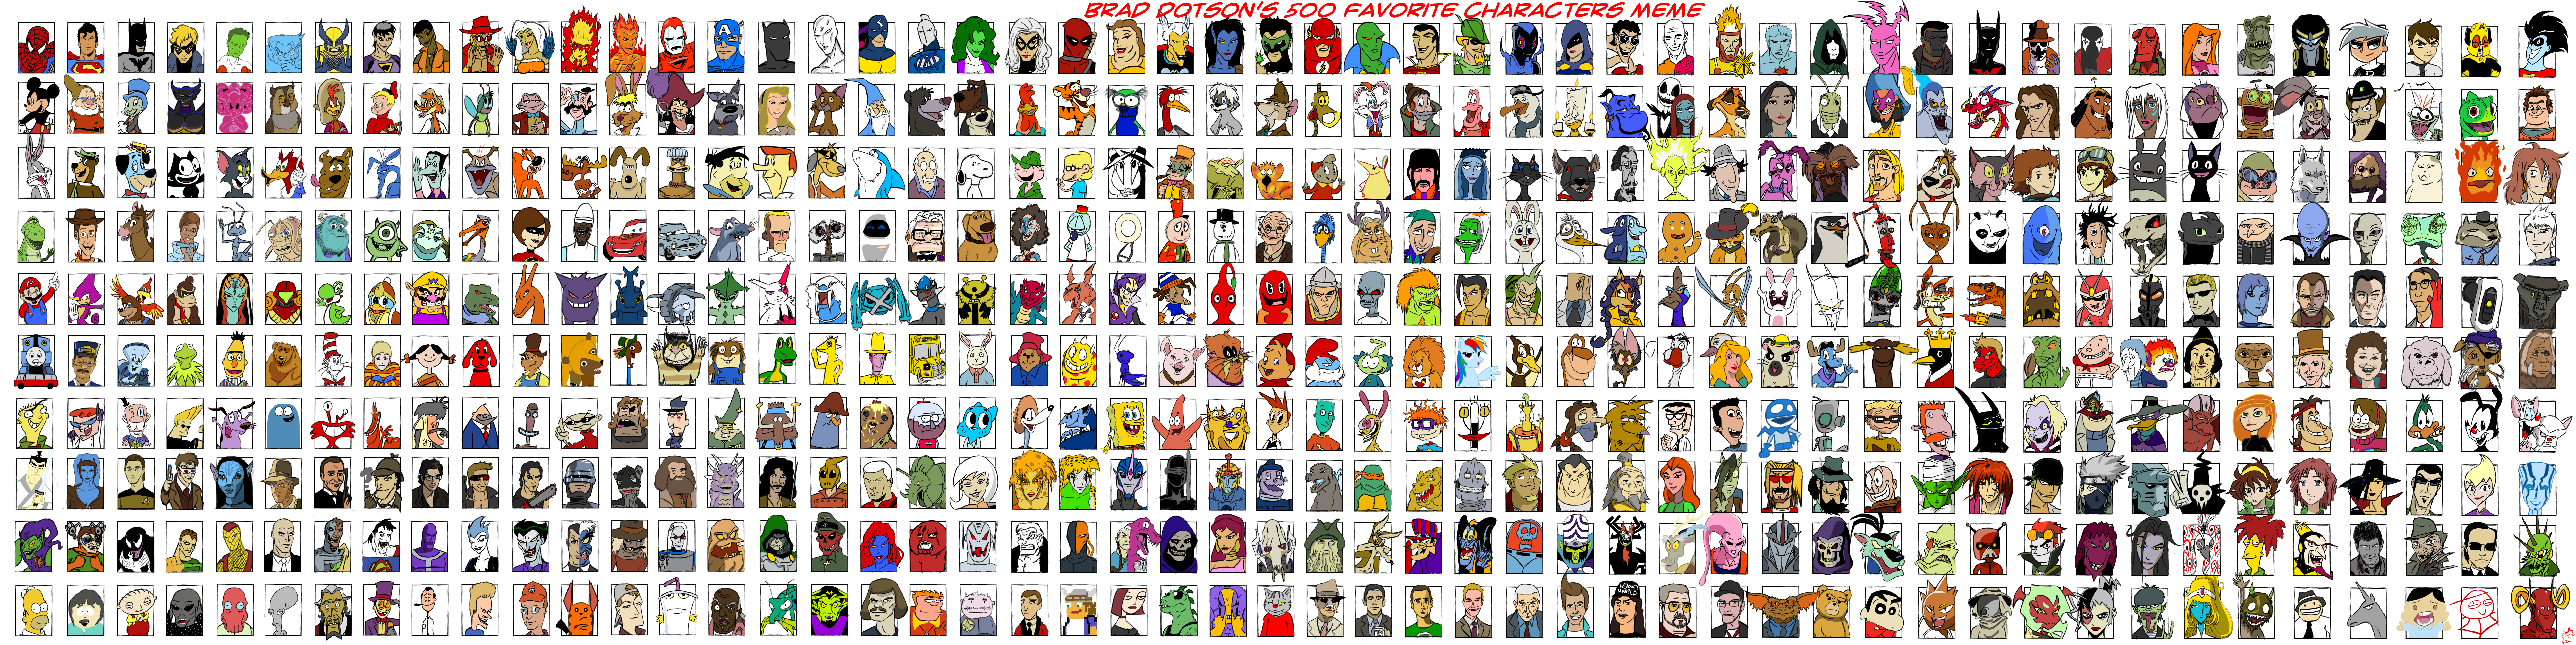 brad dotson s 500 favorite characters meme by thezoologist on deviantart